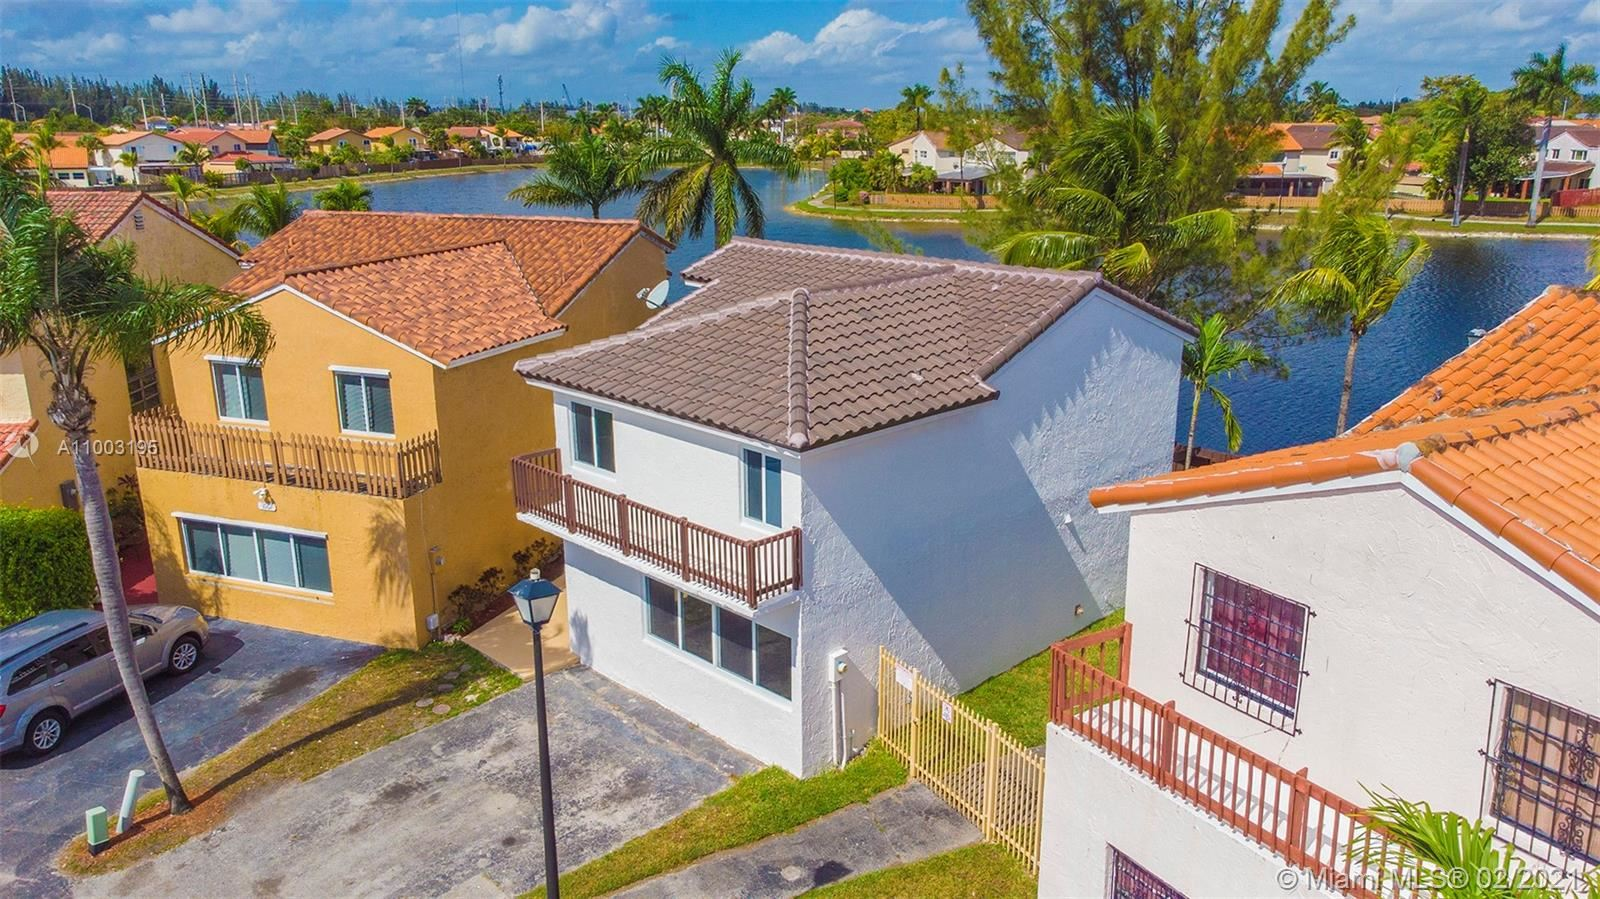 1060 SW 134th Ct, Miami, FL 33184 - #: A11003195